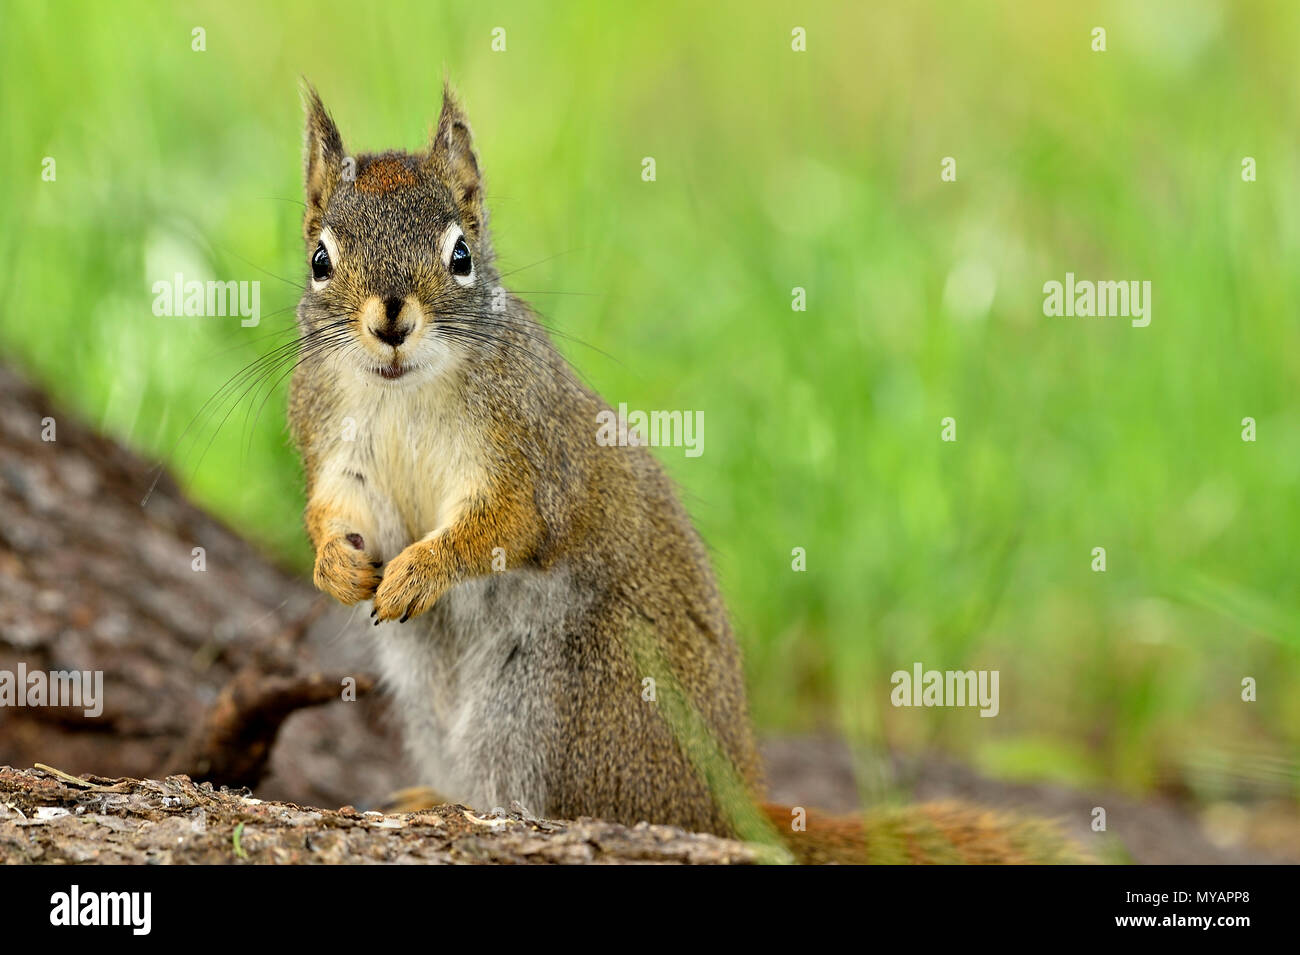 A horizontal image of a wild red squirrel  'Tamiasciurus hudsonicus'; on a tree trunk with a cute expression on his face, near Hinton Alberta. - Stock Image